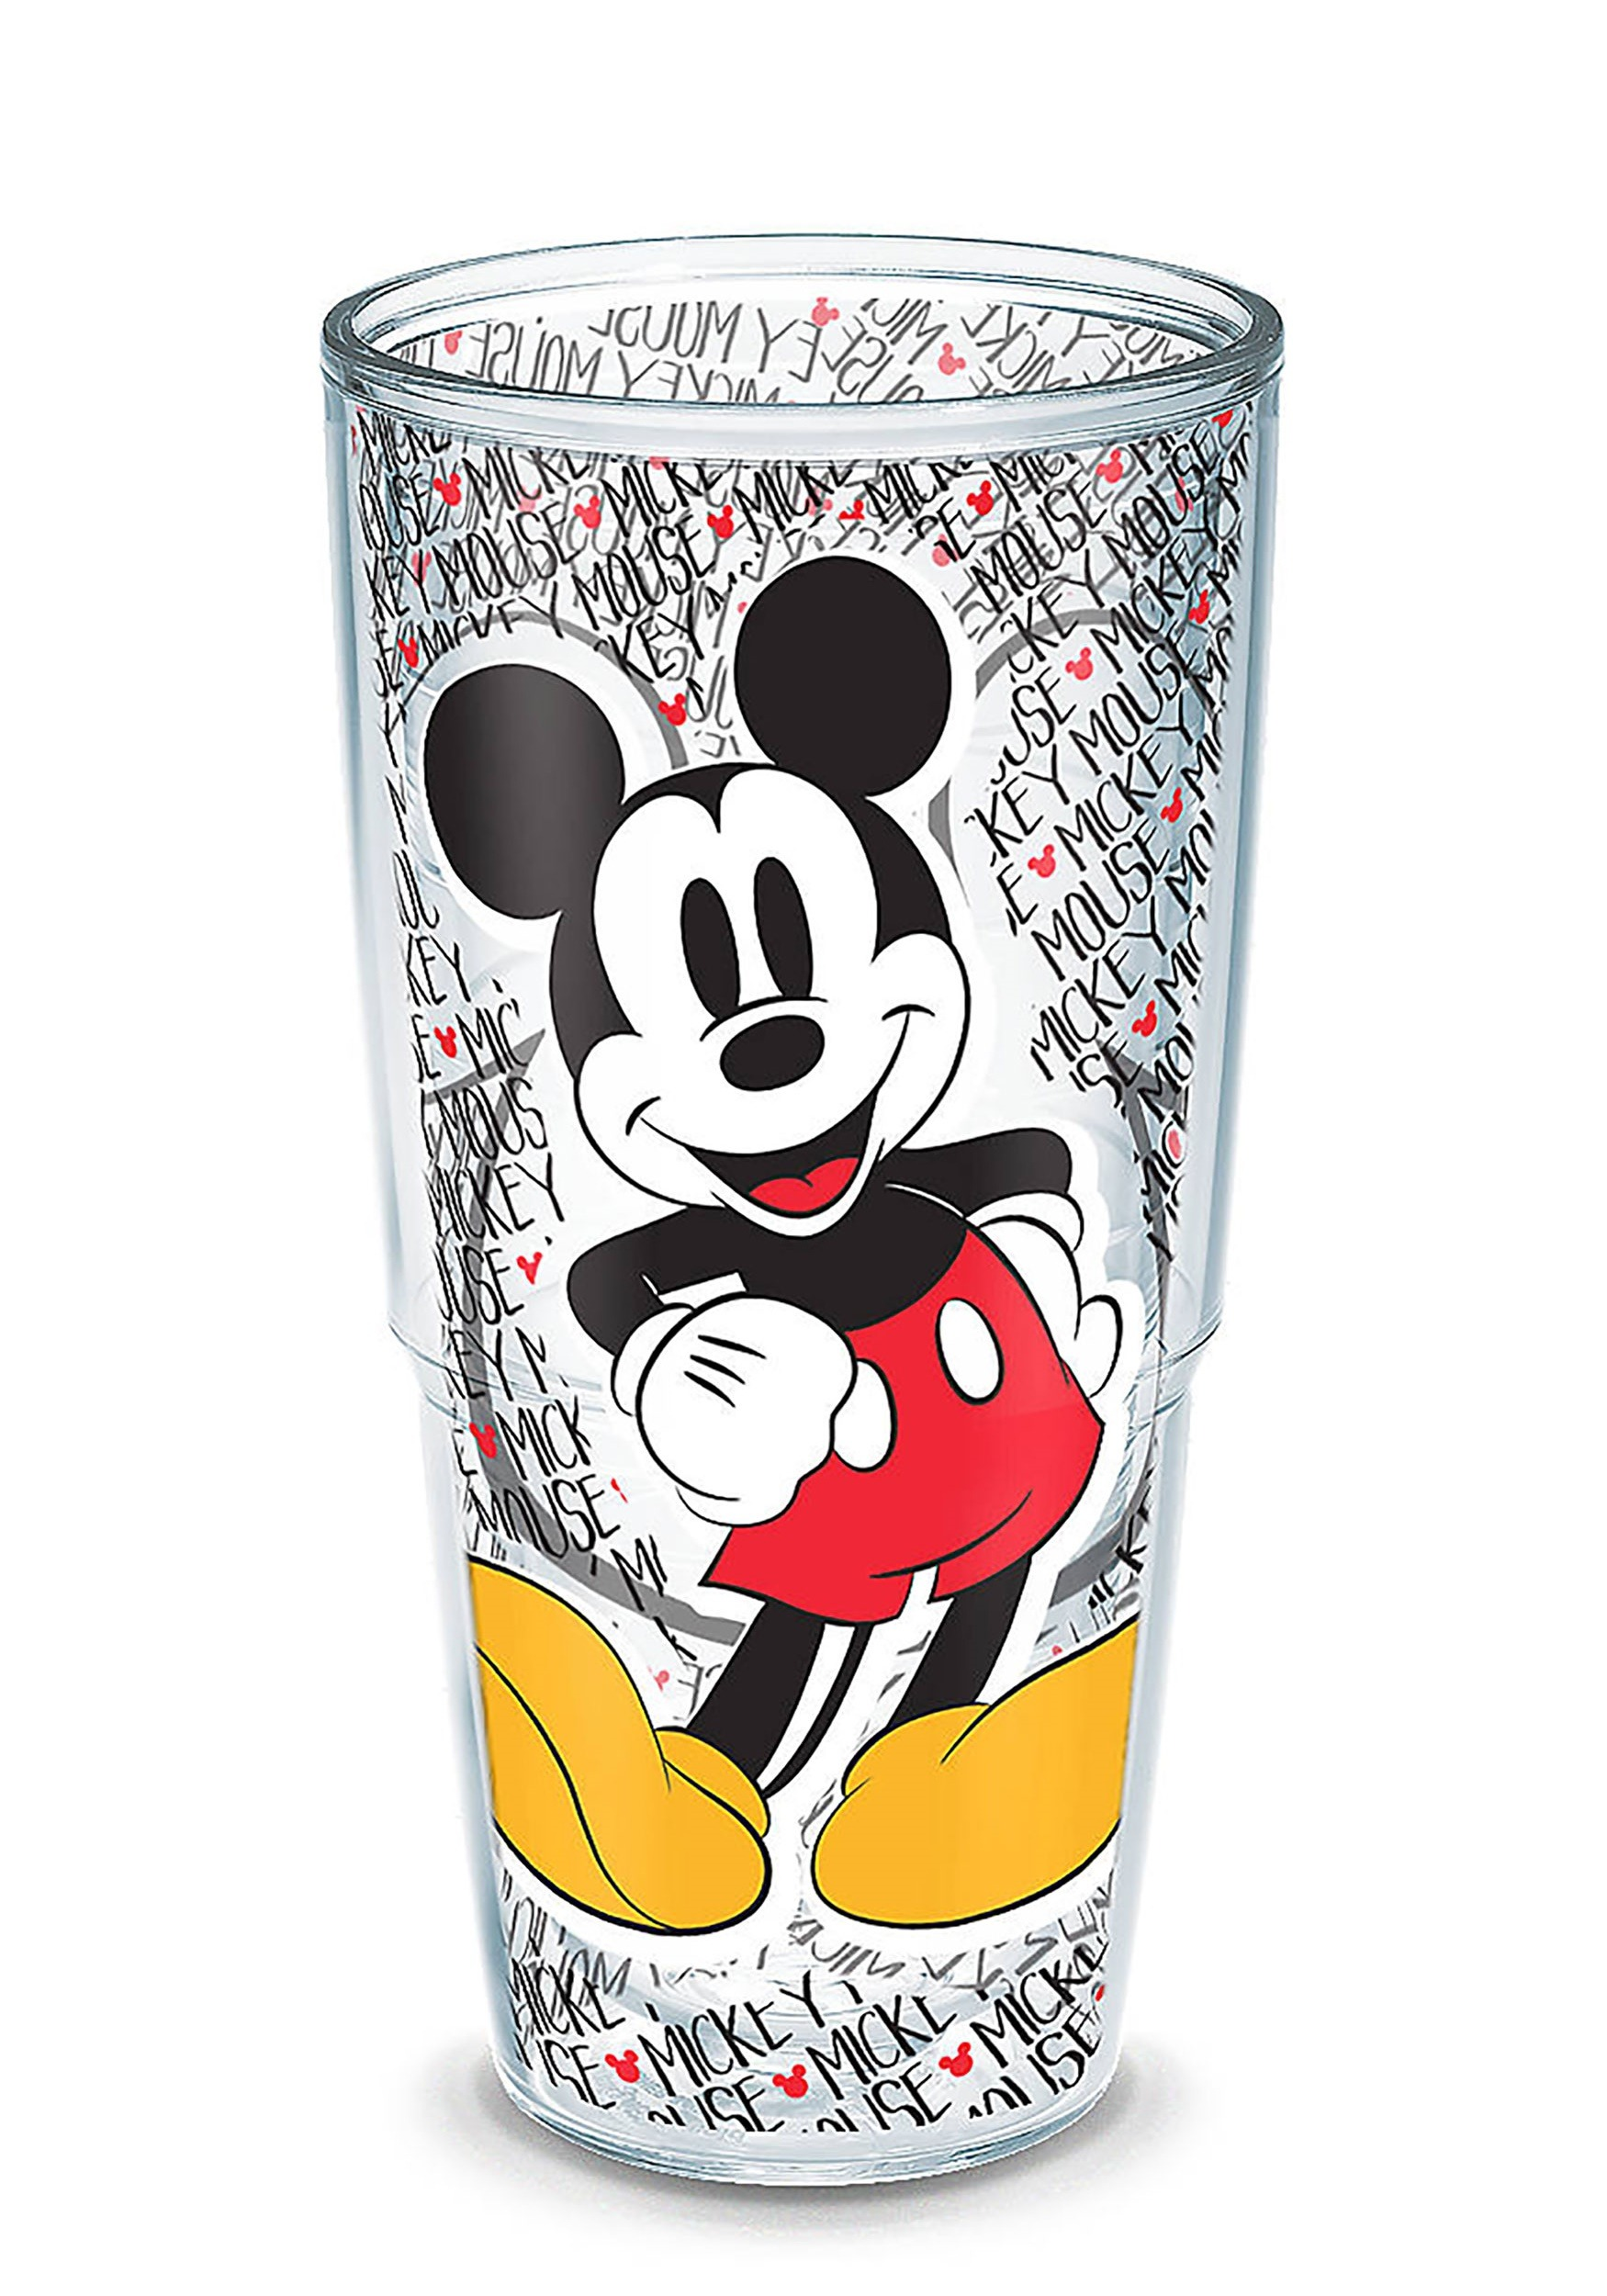 24oz Tervis Disney Mickey Mouse Name Pattern Tumbler